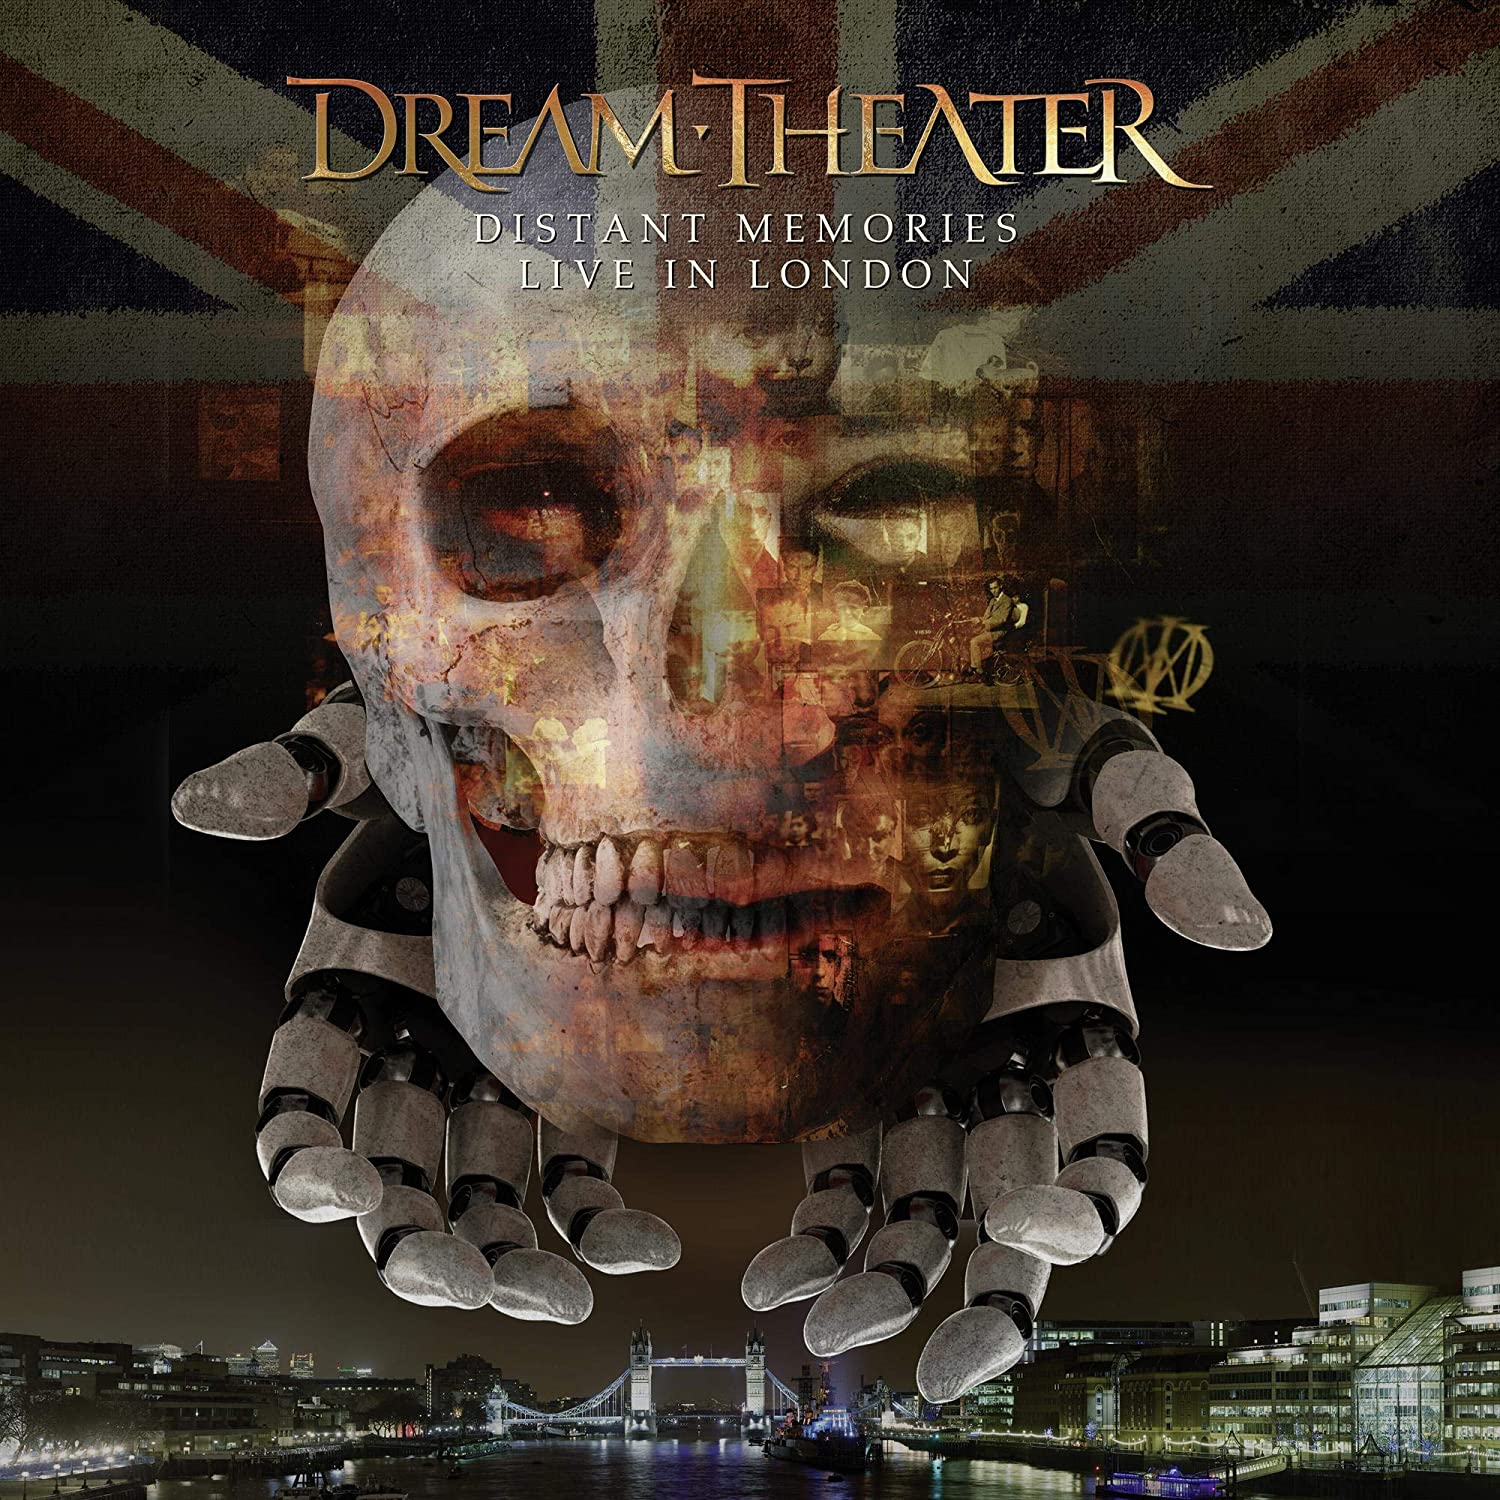 DISTANT MEMORIES - LIVE IN LONDON (WBR)-DREAM THEATER